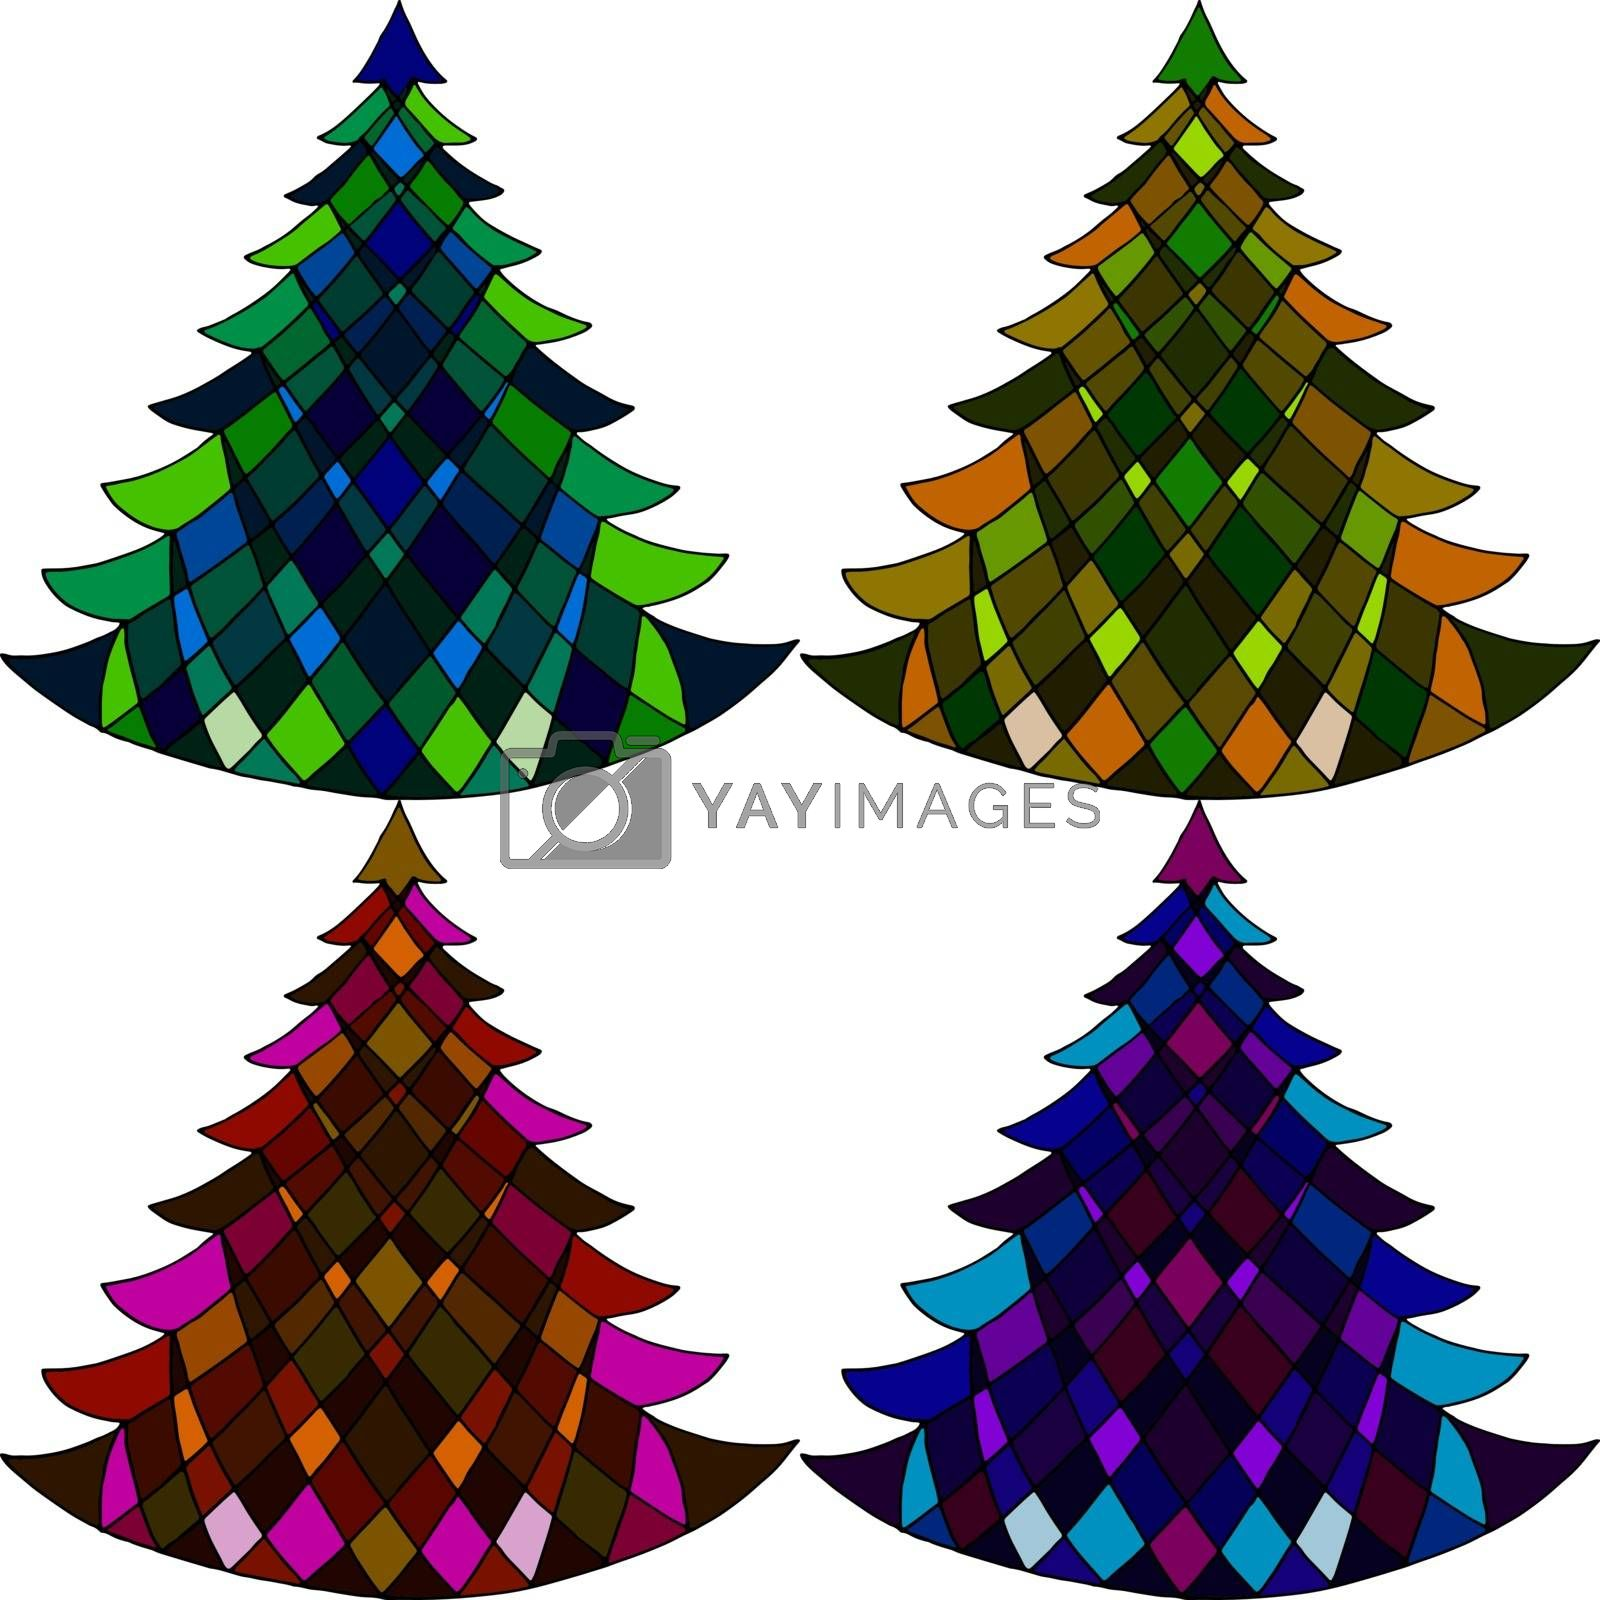 Royalty free image of Vector seamless pattern of four Christmas trees by olga_ovchinnikova